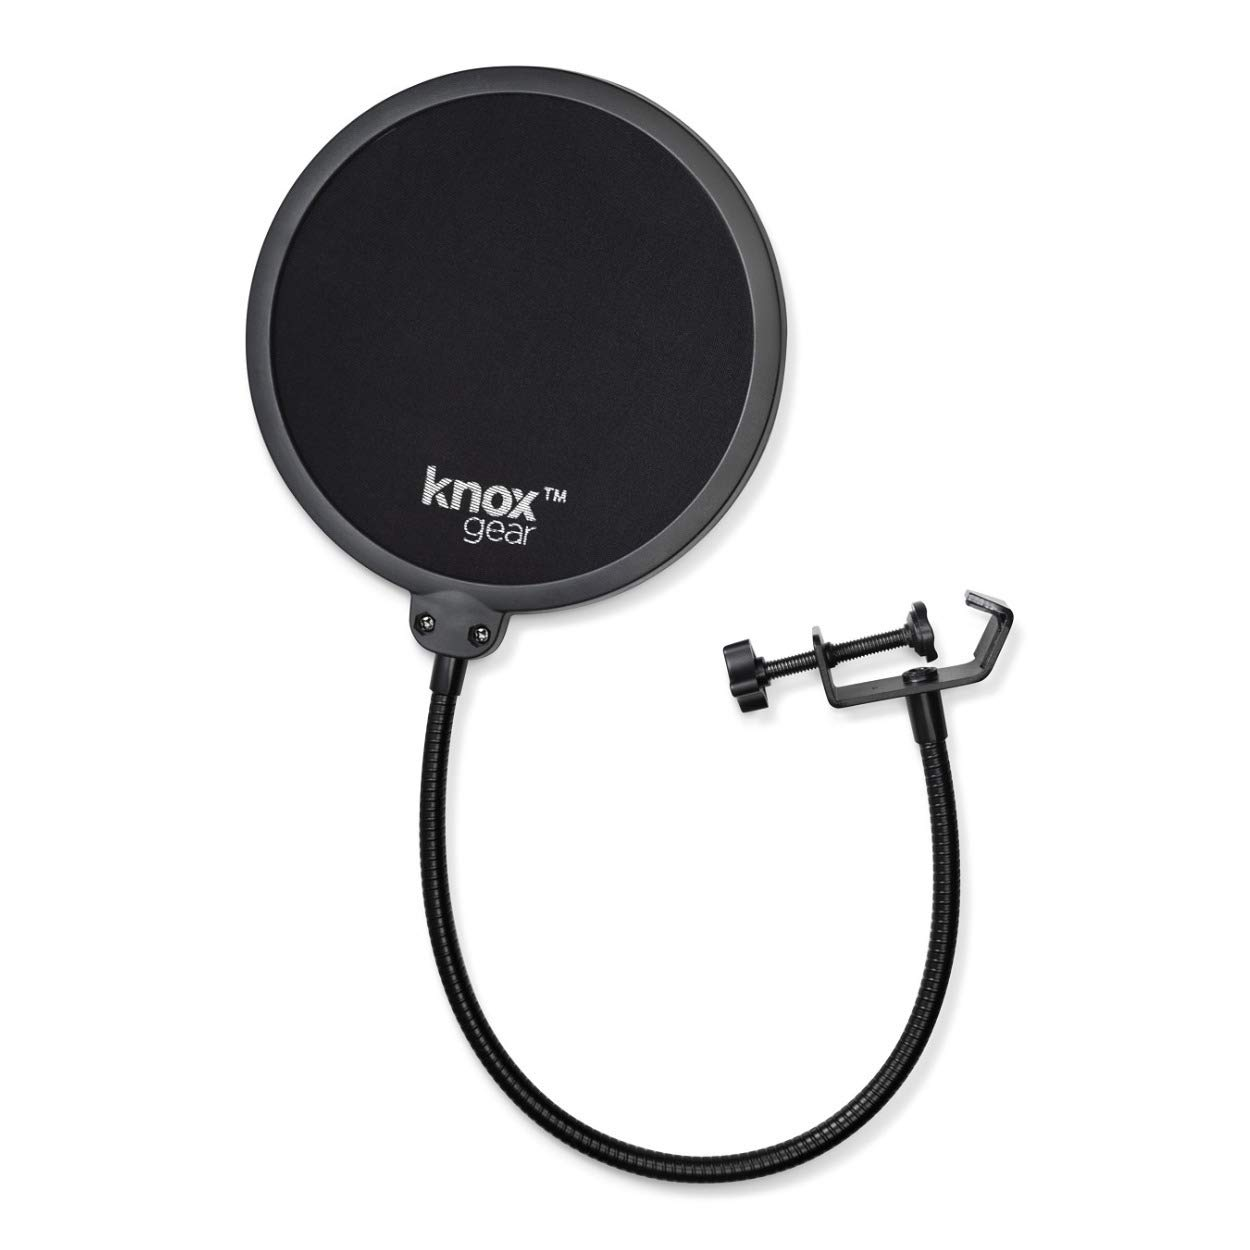 Blue Yeti Nano USB Microphone (Vivid Blue) with Headphones and Knox Gear Pop Filter by Blue Microphones